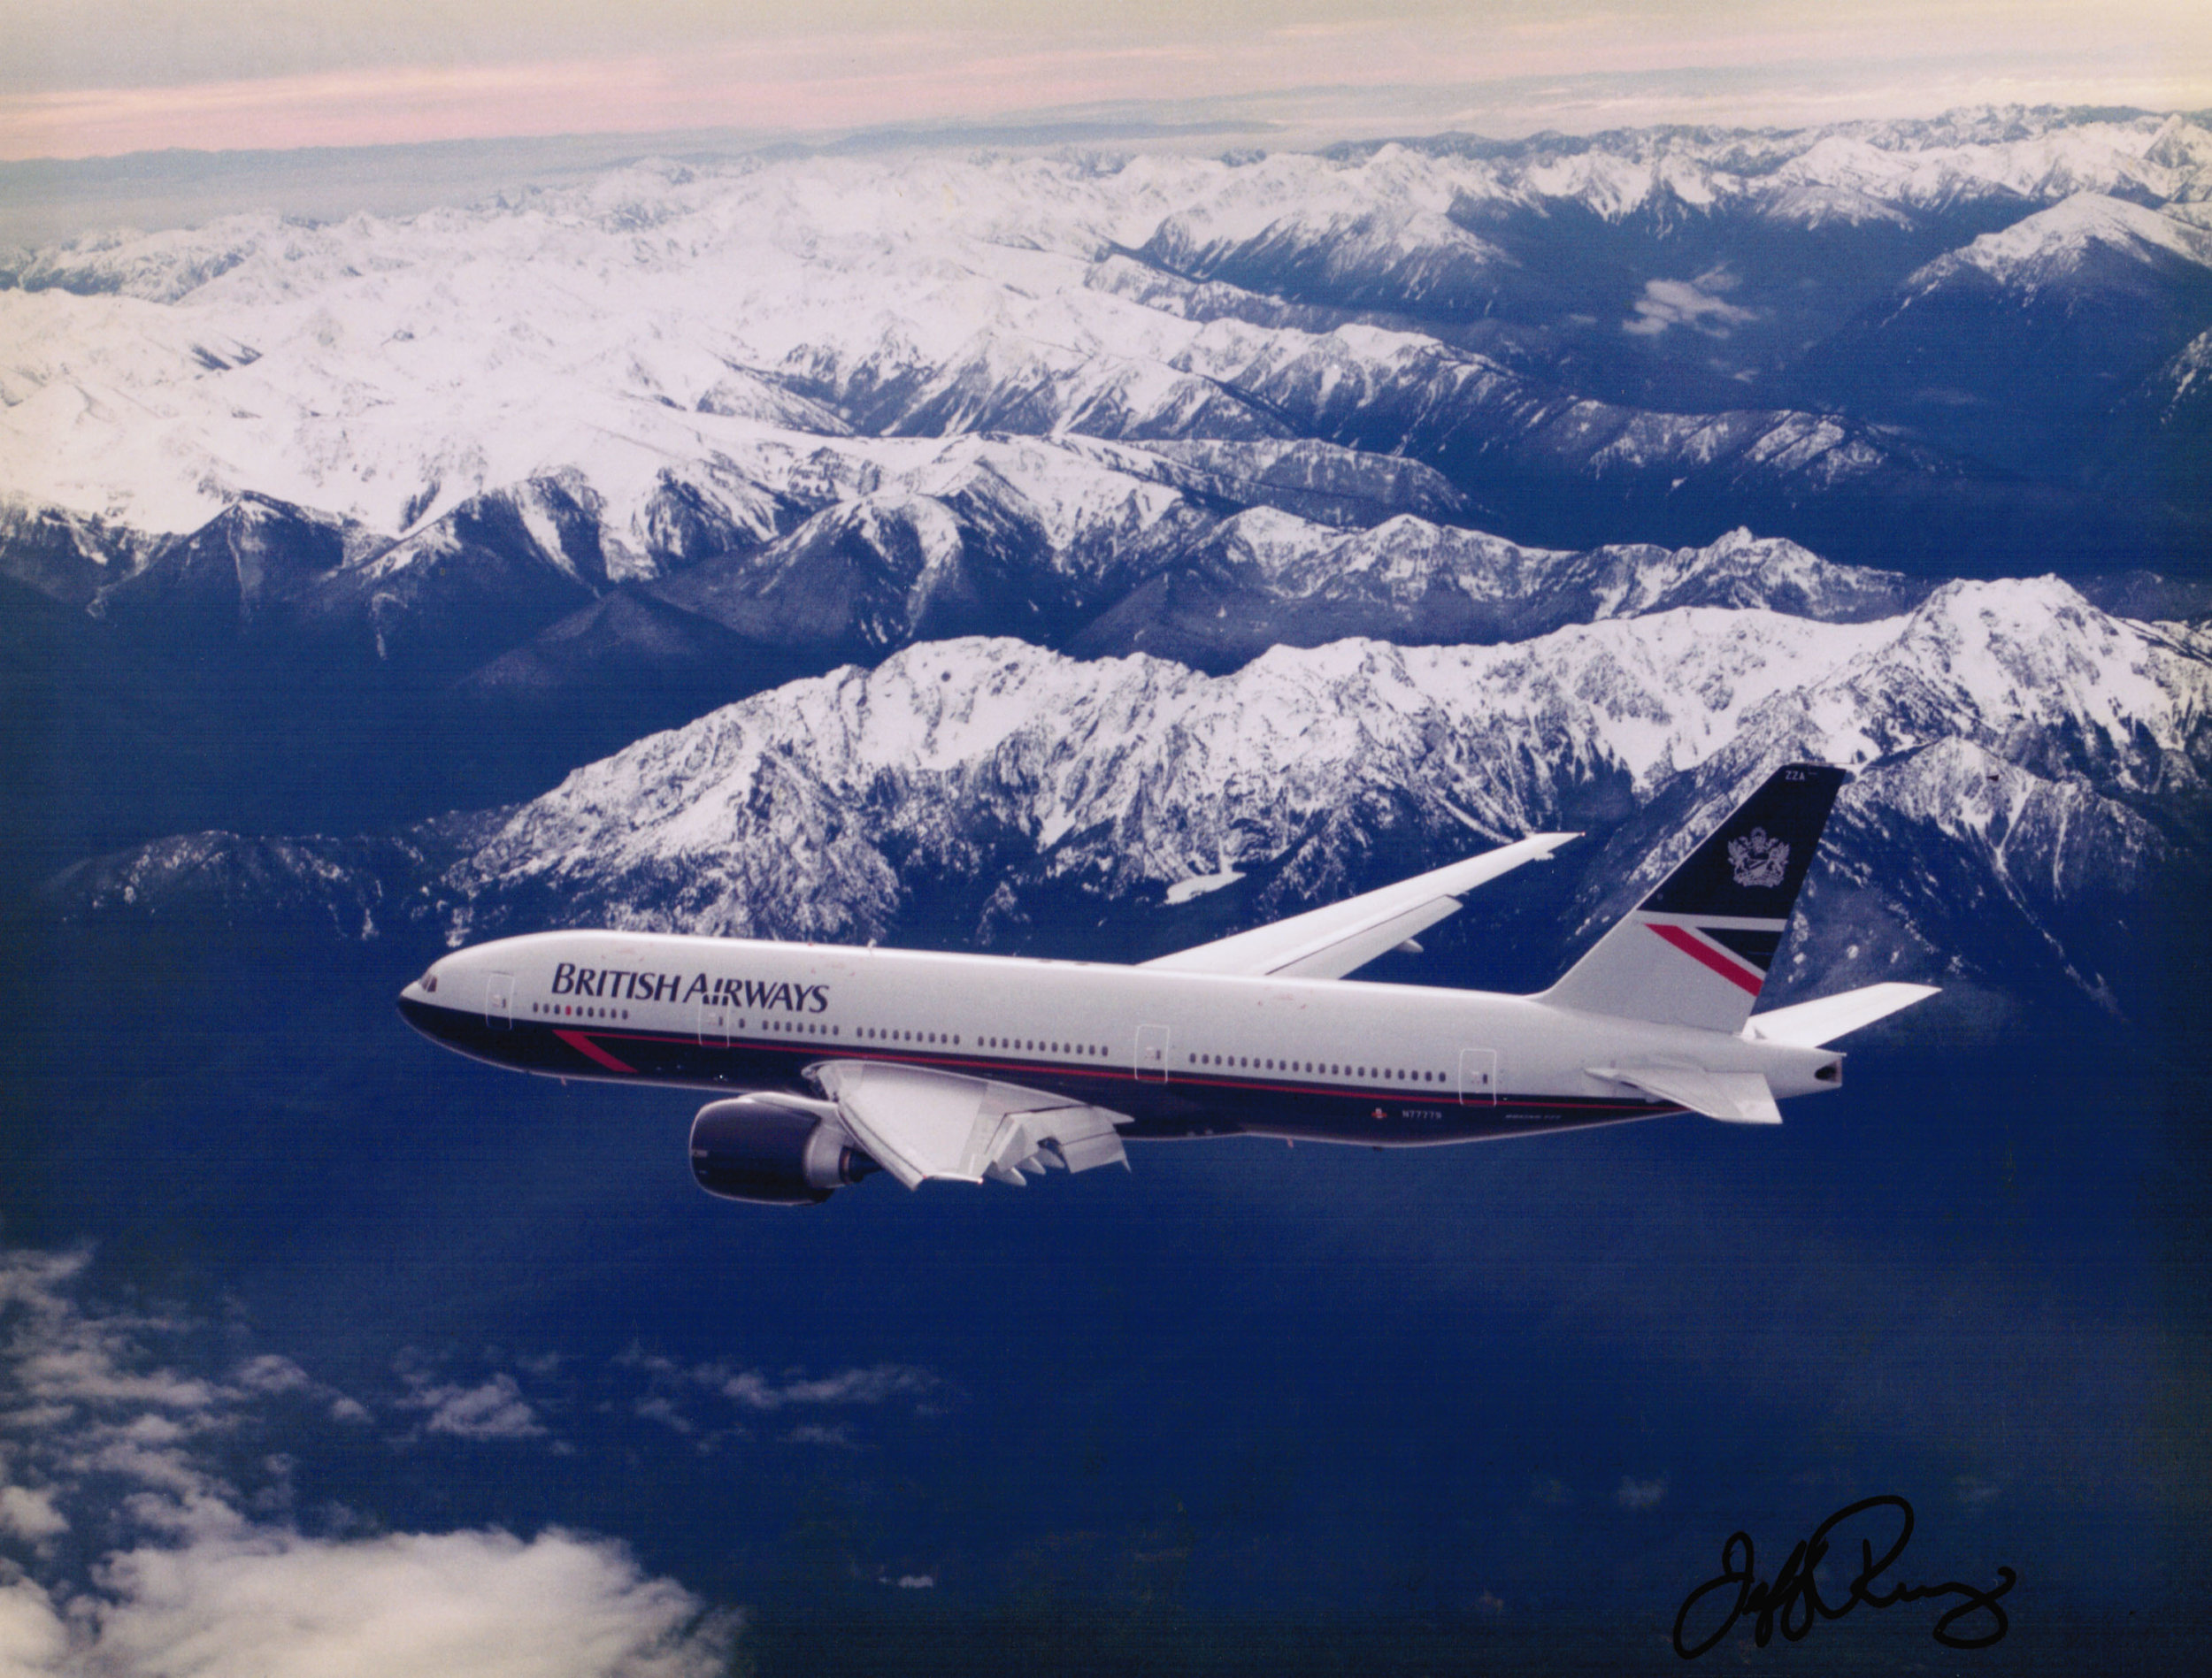 777 Photo courtesy of my friend, Jeff Rumsey, Boeing flight test photographer. He shot from the chase plane high over the Olympic mountains in western Washington state. I love the old British Airways paint scheme.